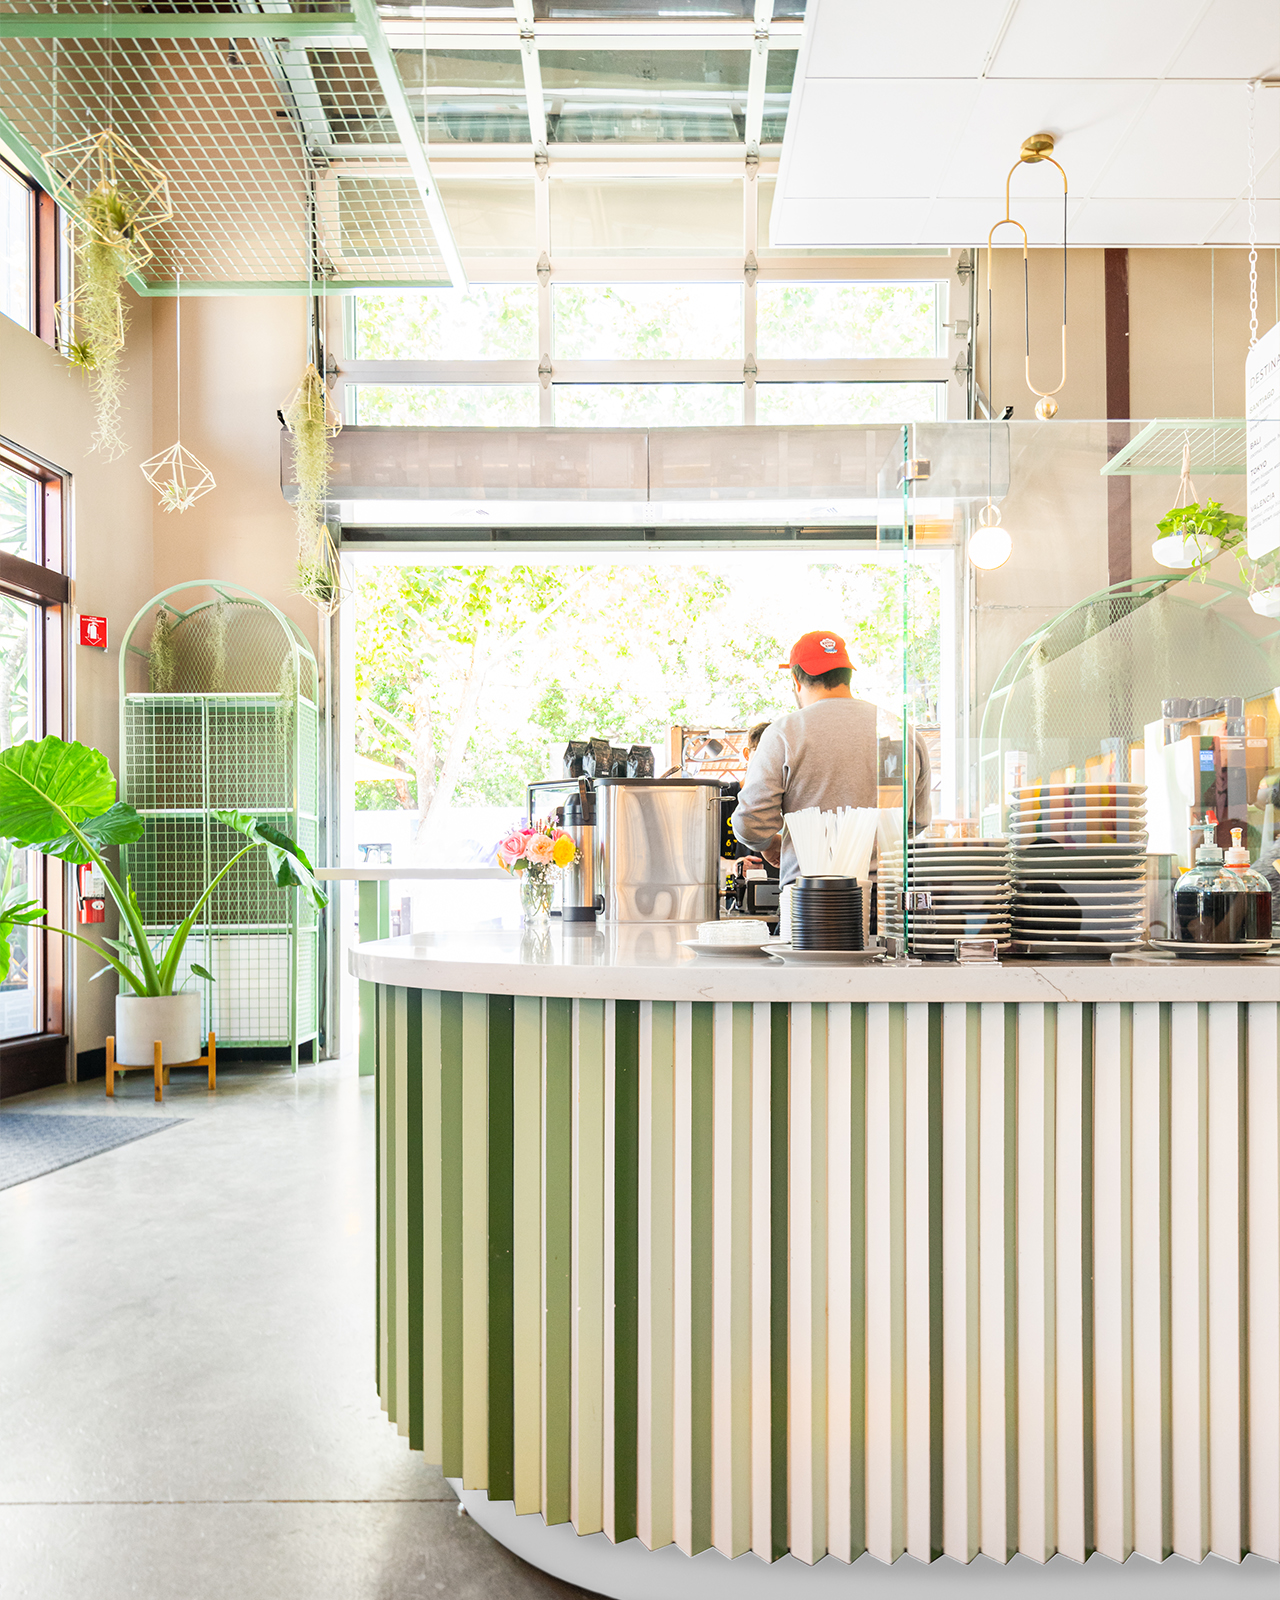 Voyager Craft Coffee: The Square